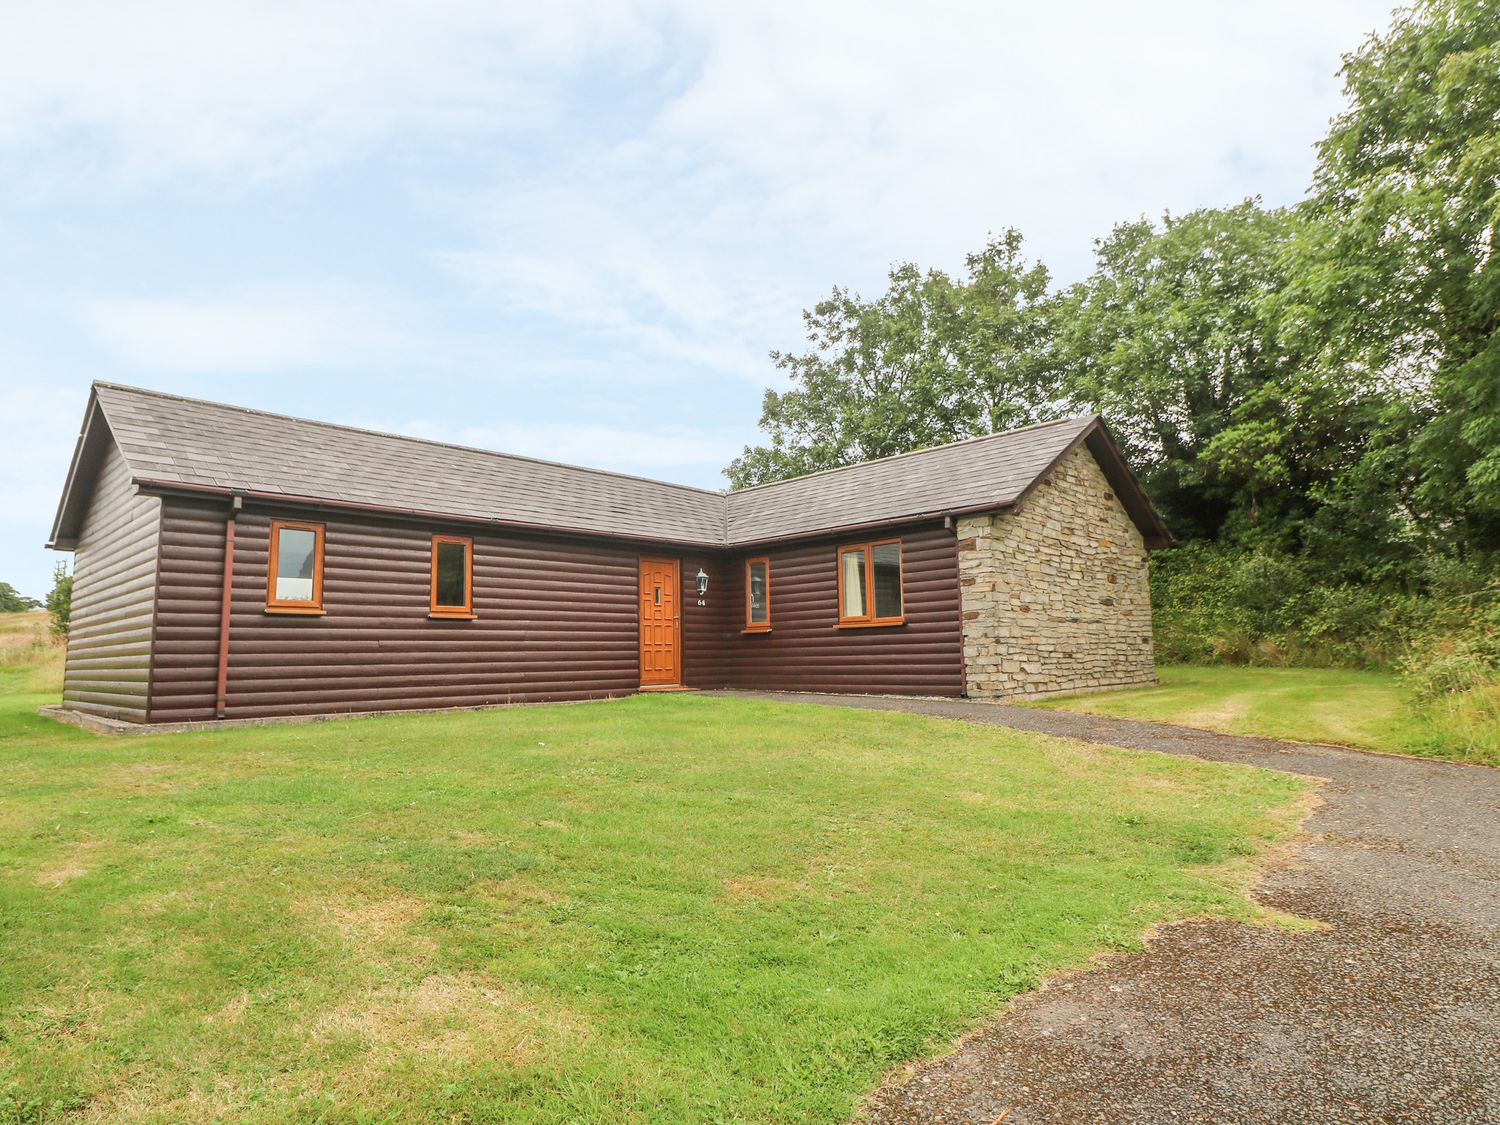 64 Waterside - Cornwall - 1013274 - photo 1